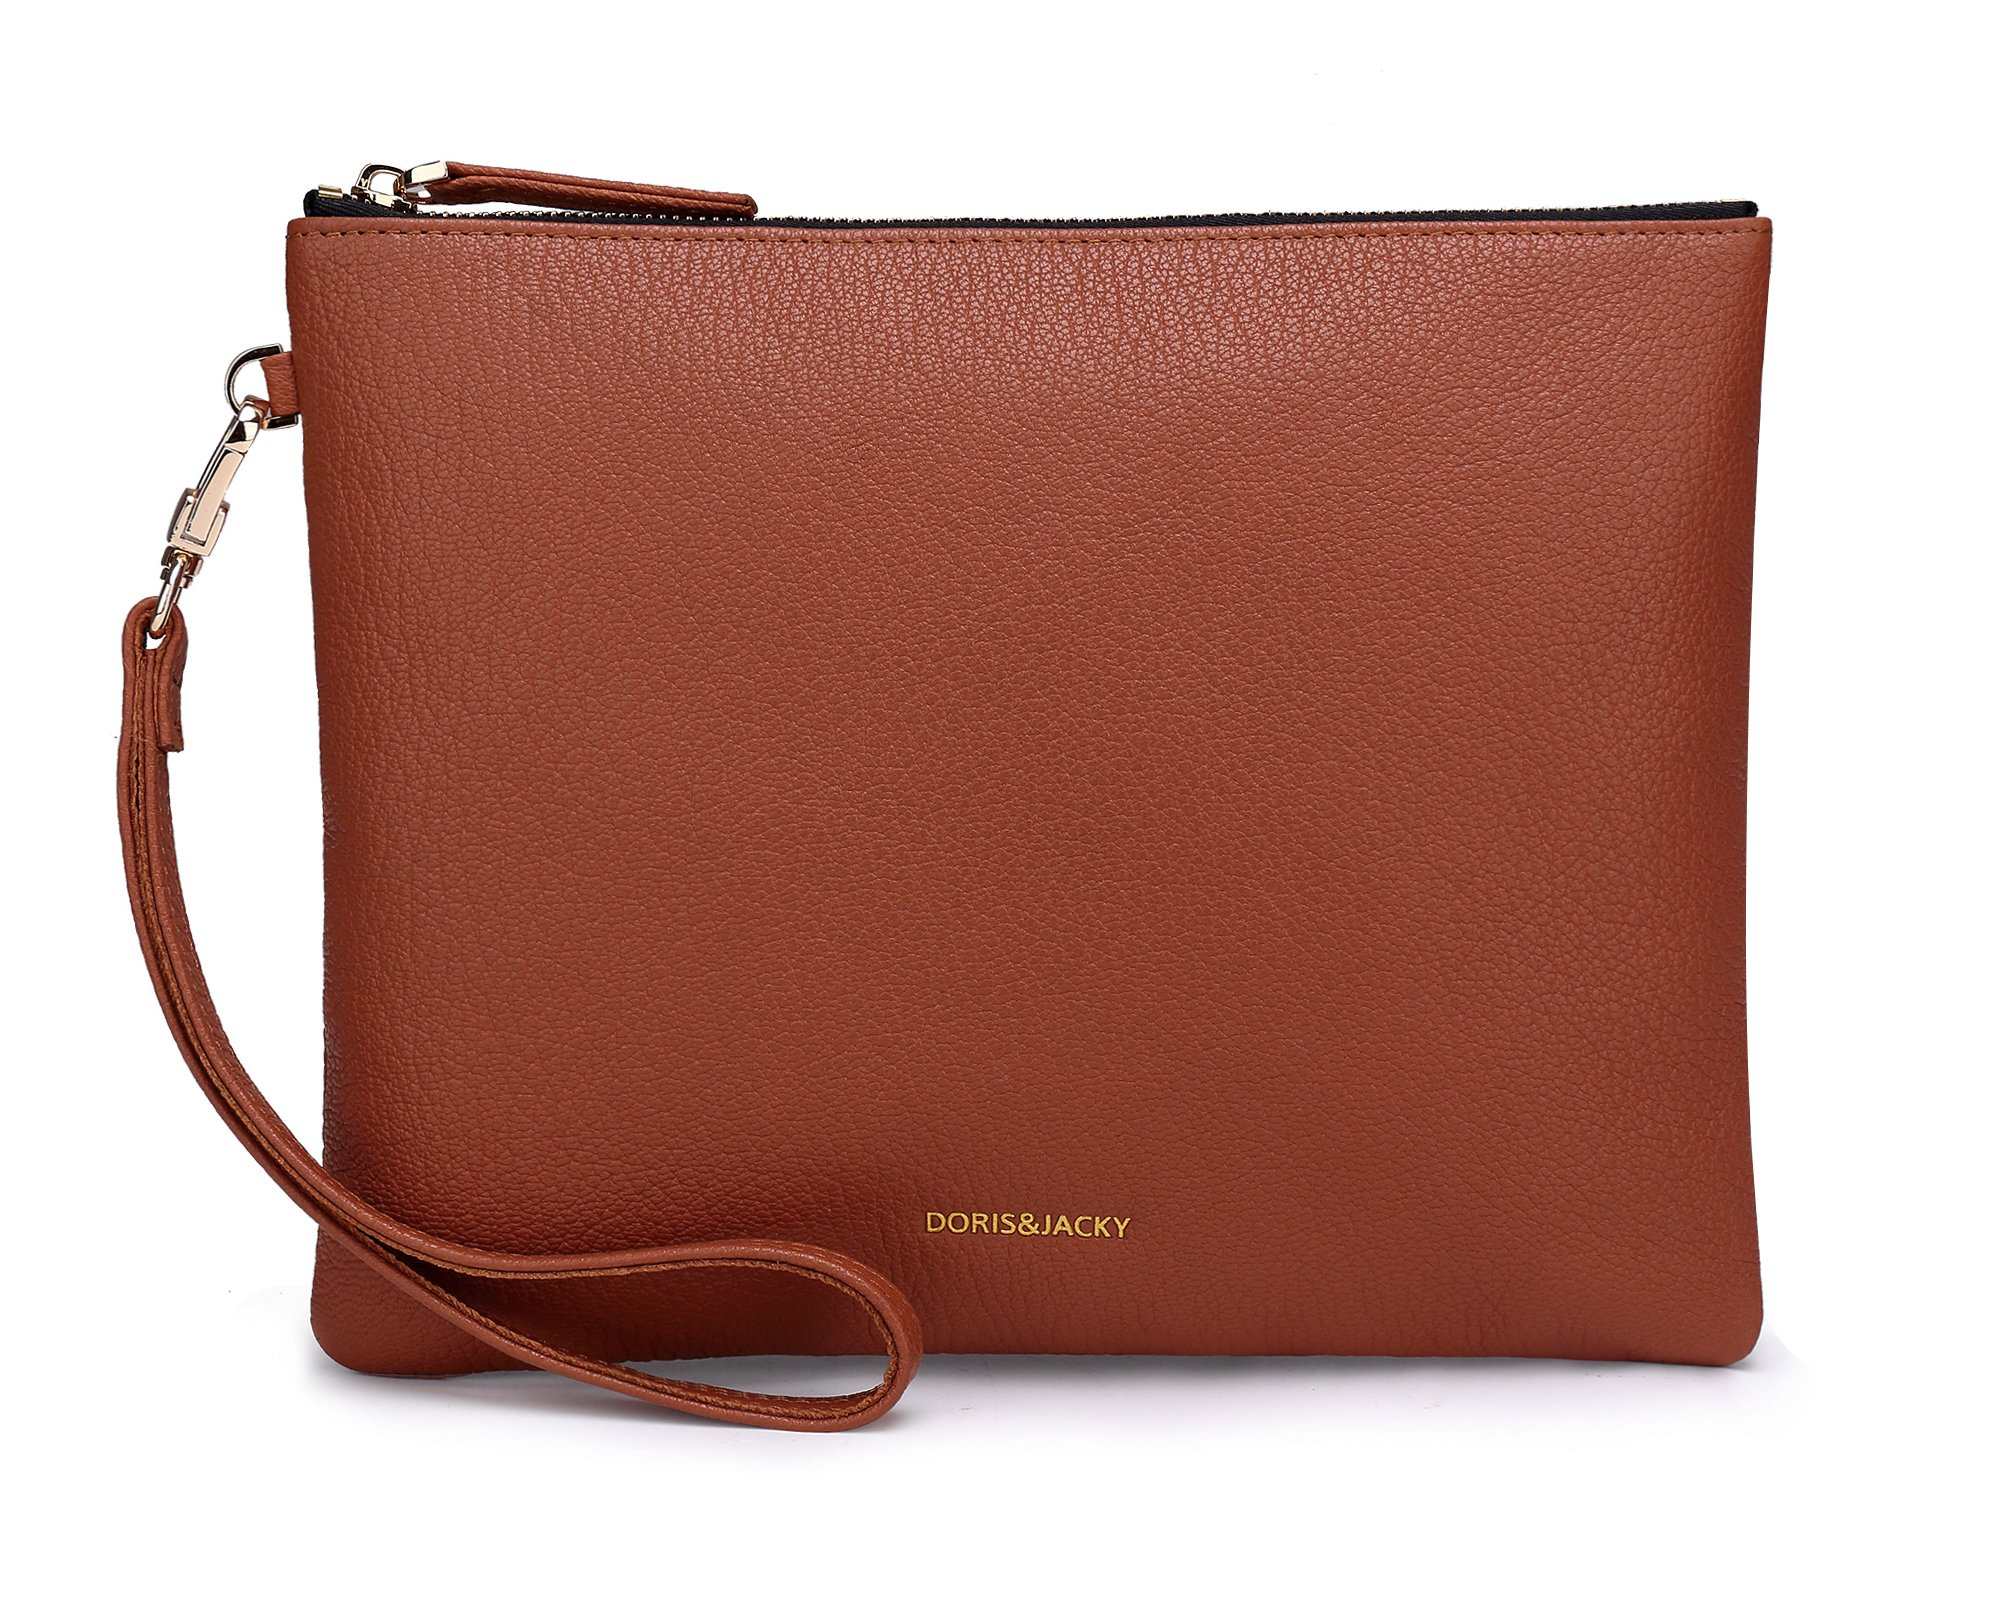 Soft Lambskin Leather Wristlet Clutch Bag For Women Designer Large Wallets With Strap (Brown-Goat Leather)